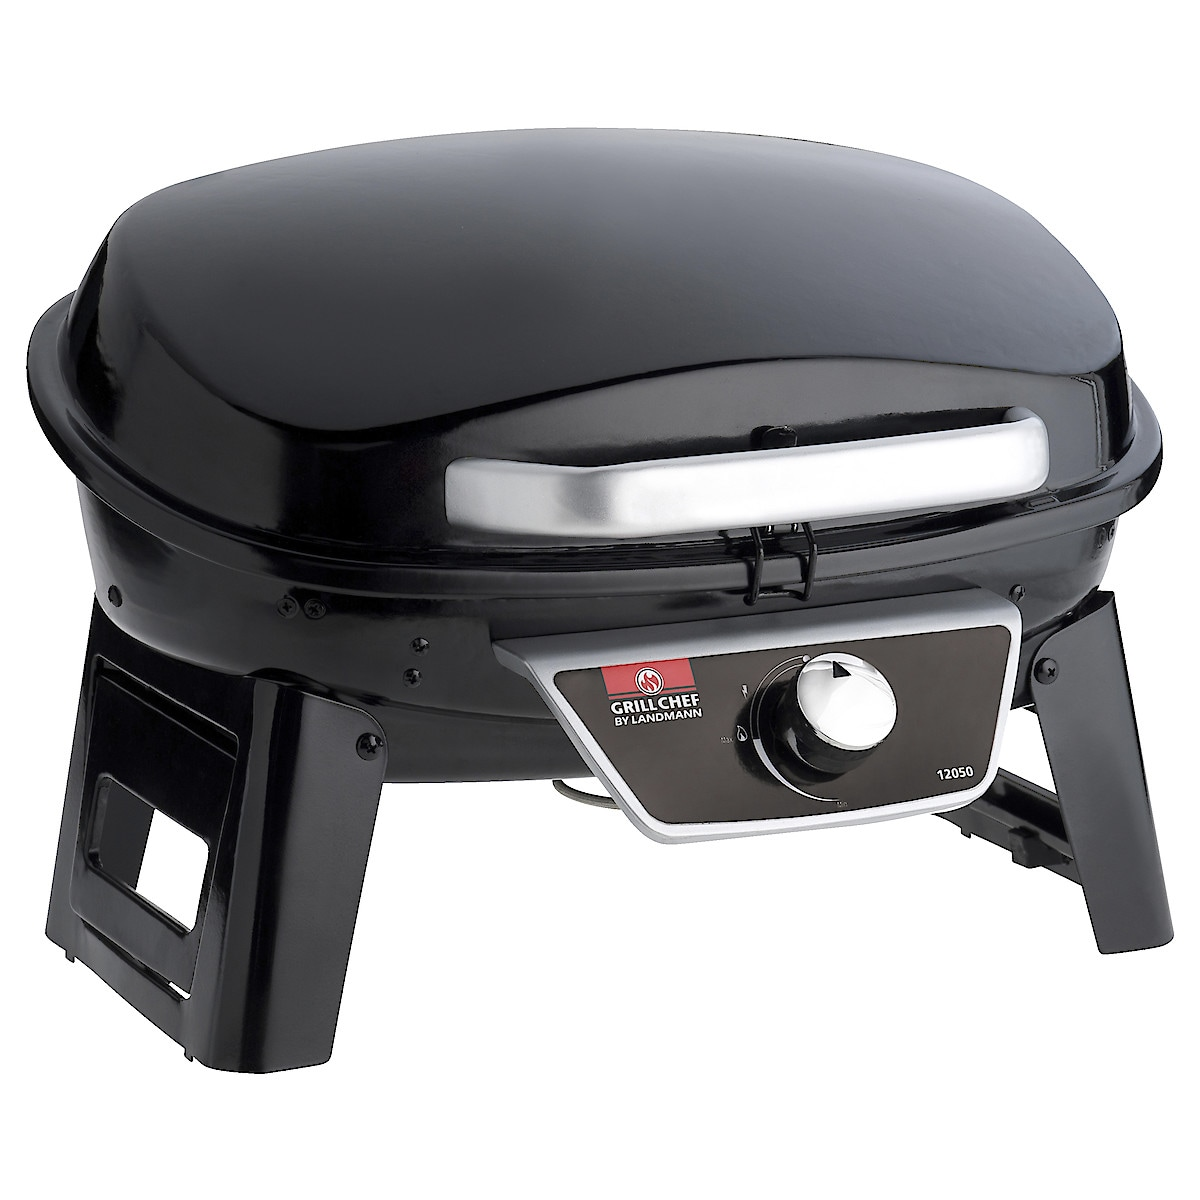 Gasolgrill Mini, Grillchef by Landmann